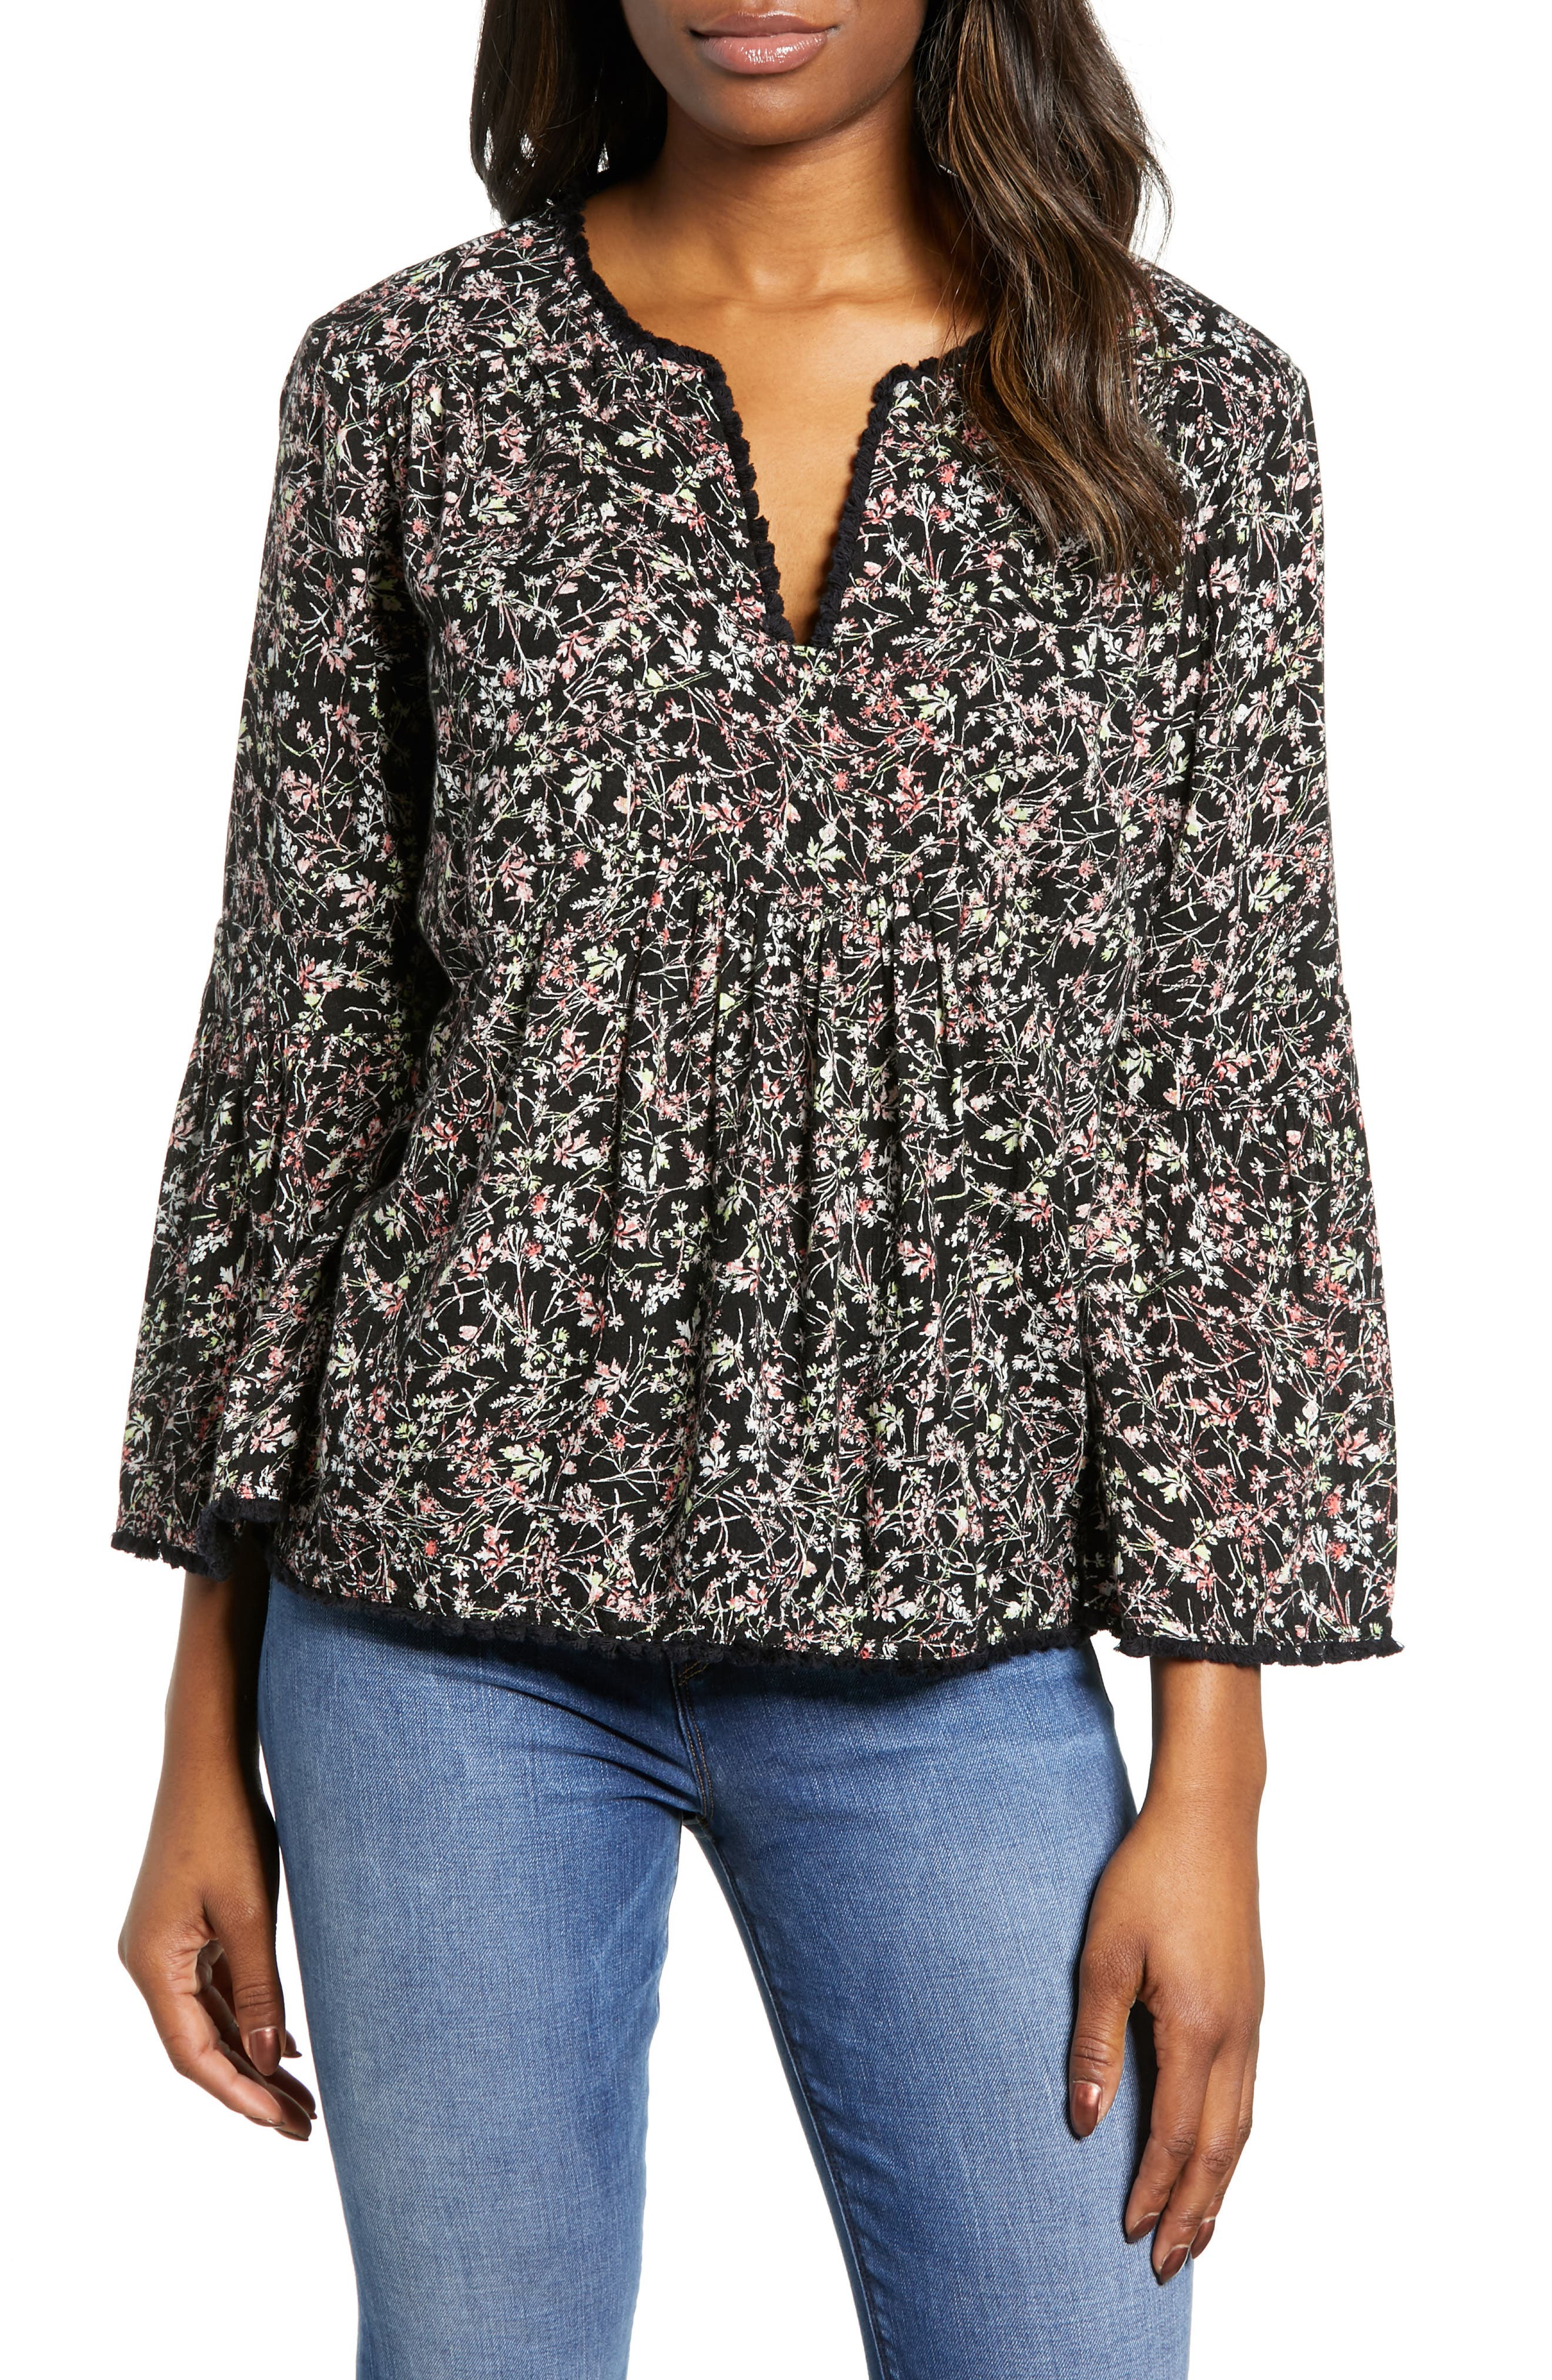 CASLON<SUP>®</SUP>, Print Fringe Trim Top, Main thumbnail 1, color, BLACK- GREEN NATURE FLORAL